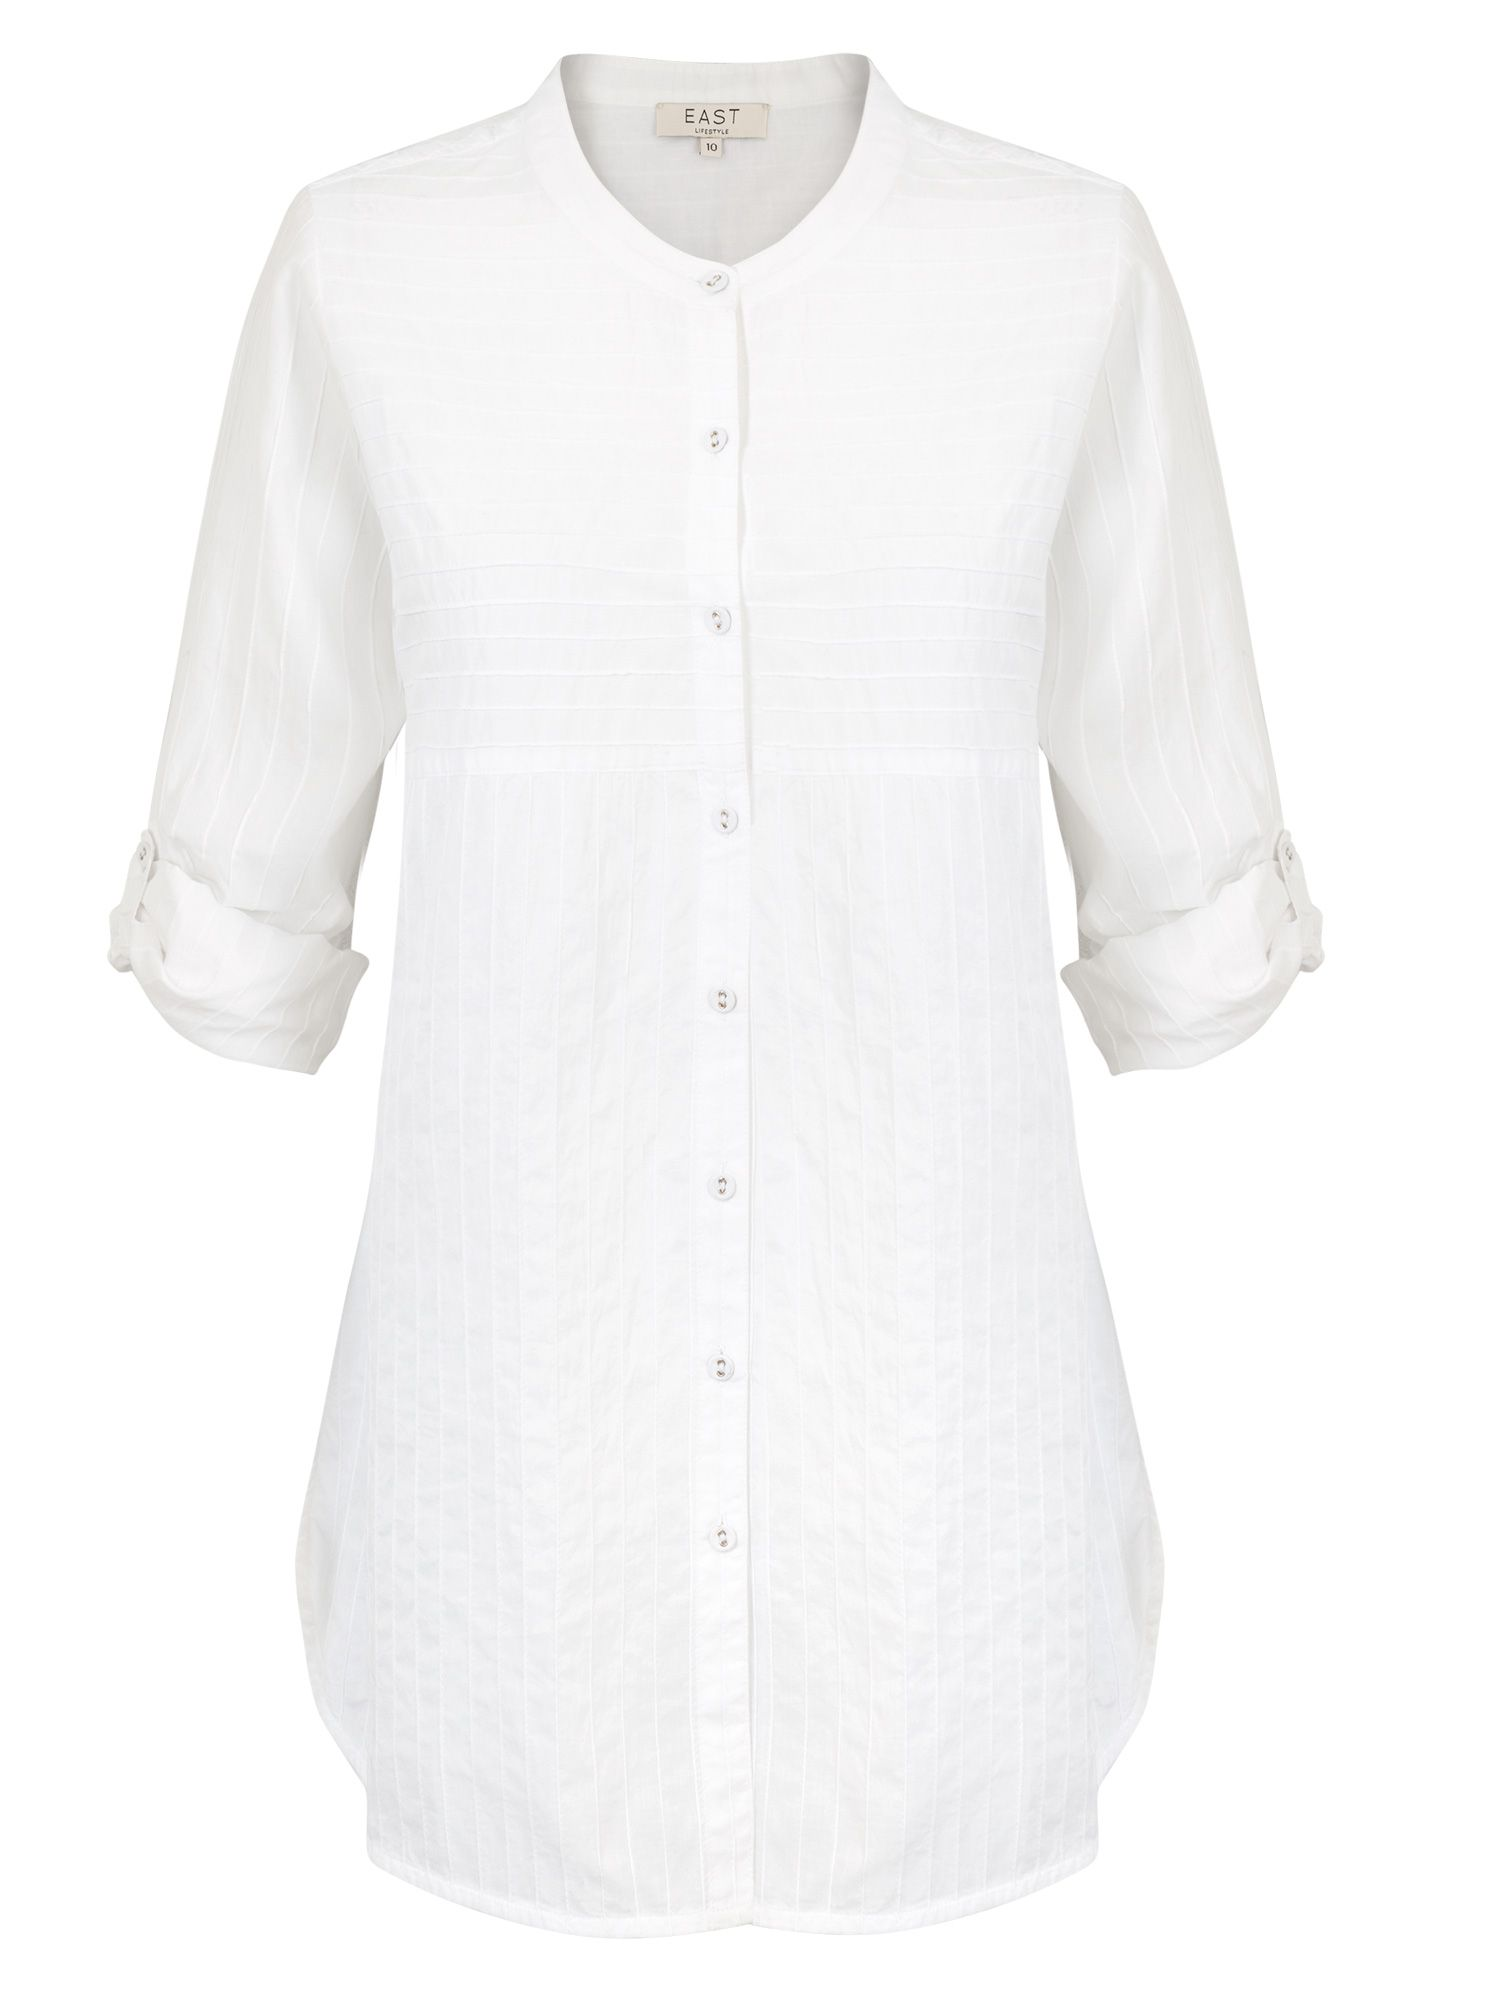 East Pintuck Detail Long Shirt, White